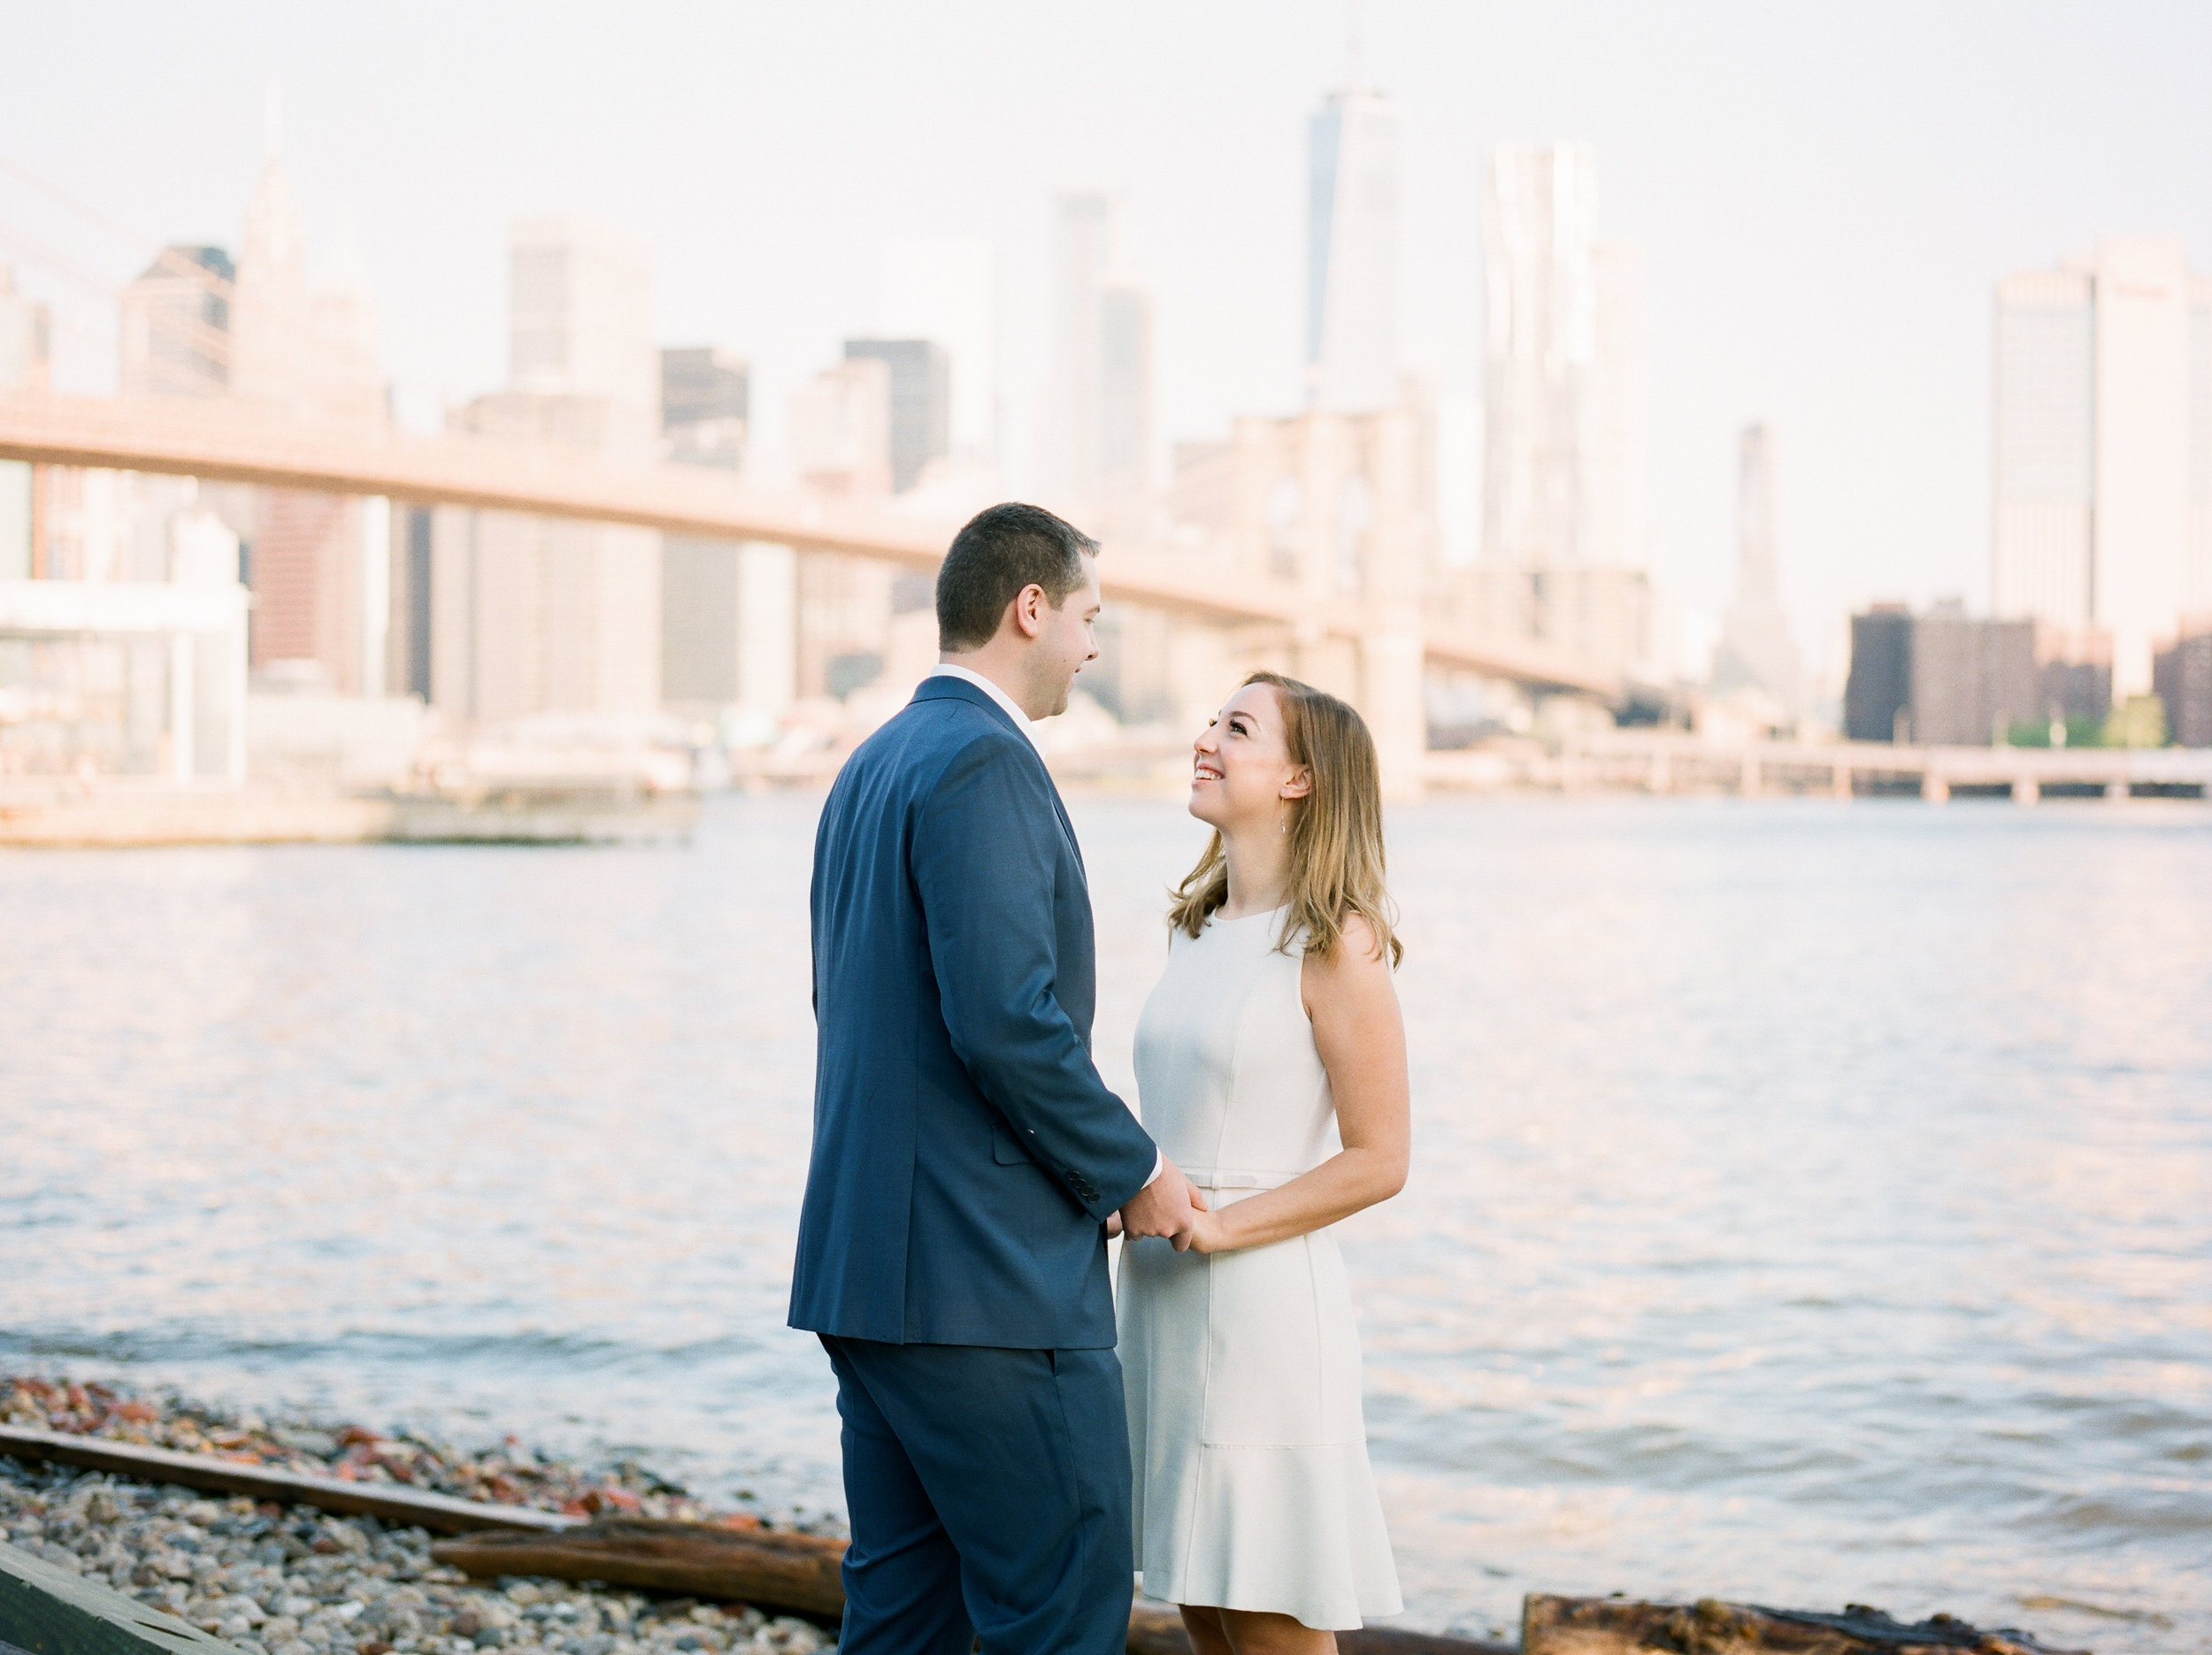 Dumbo-Engagement-Session-Asher-Gardner1.jpg